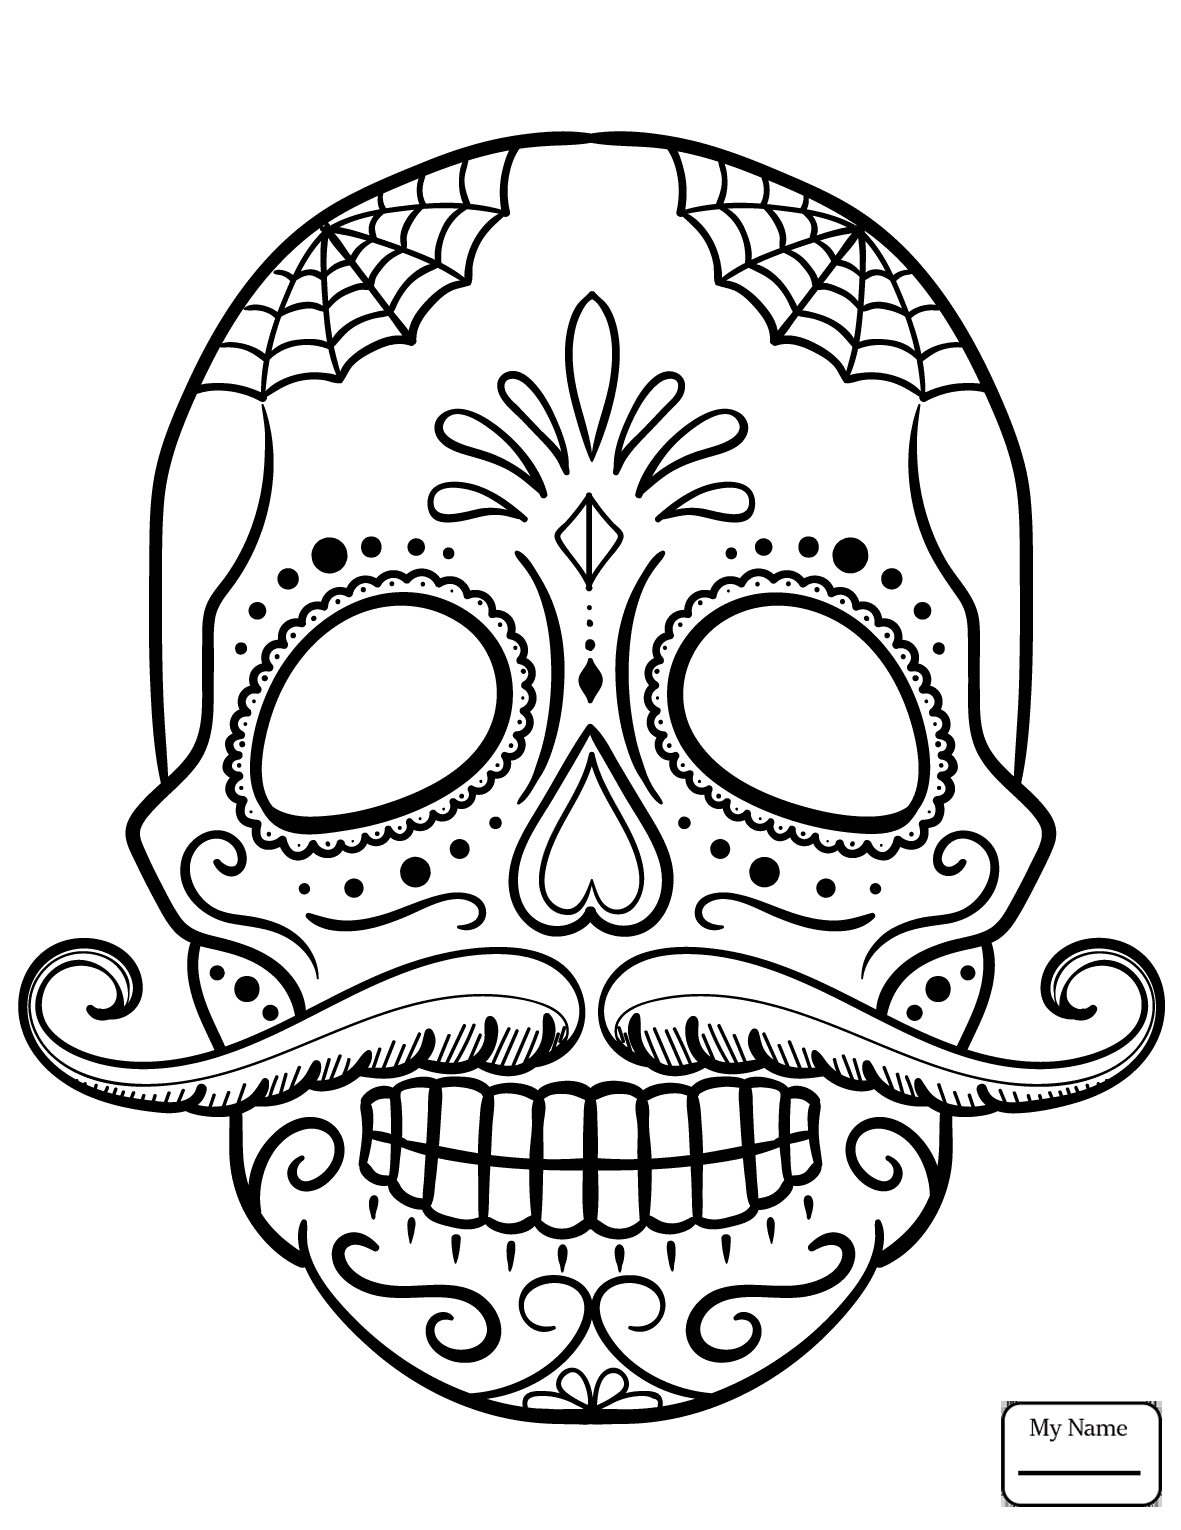 Coloring Pages ~ Skull Coloring Pages Free Printable Sugar Adult 54 - Free Printable Sugar Skull Coloring Pages